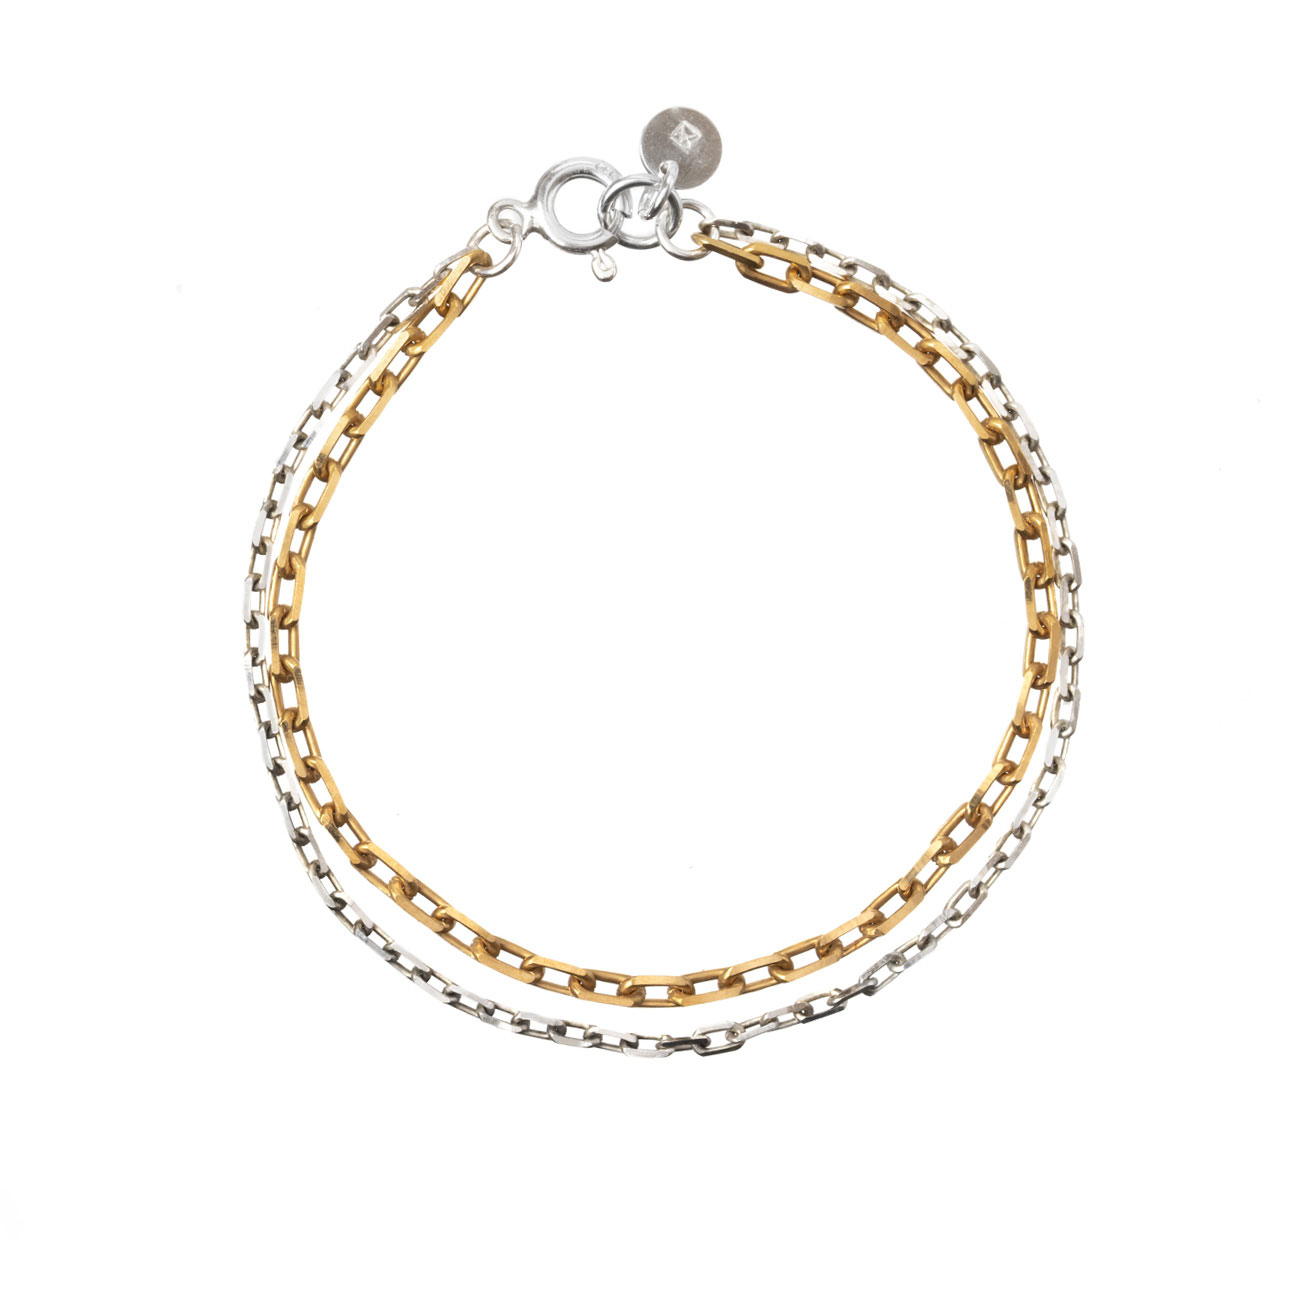 GUILTY PLEASURES DOUBLE CHAIN BRACELET